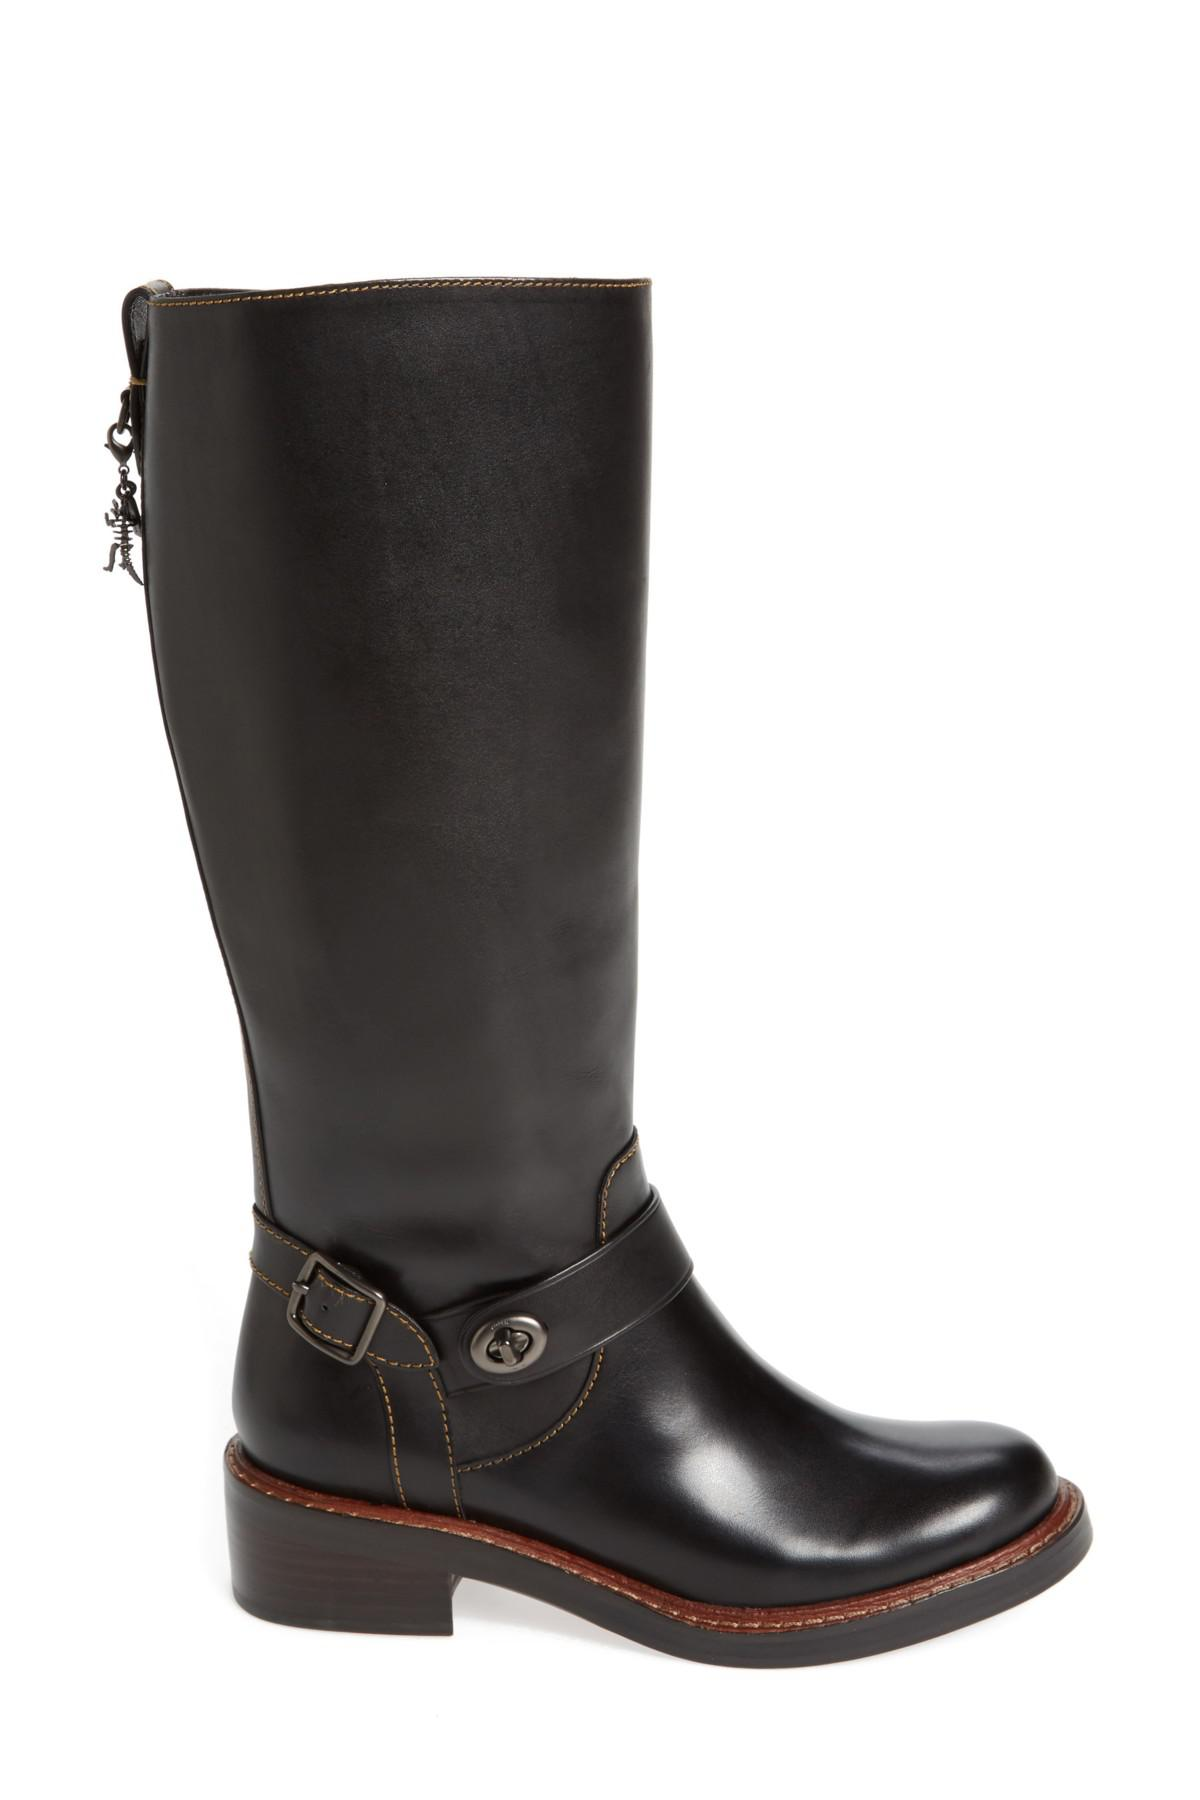 915601620601 Lyst - COACH Womens Sutton Leather Round Toe Knee High Fashion Boots ...